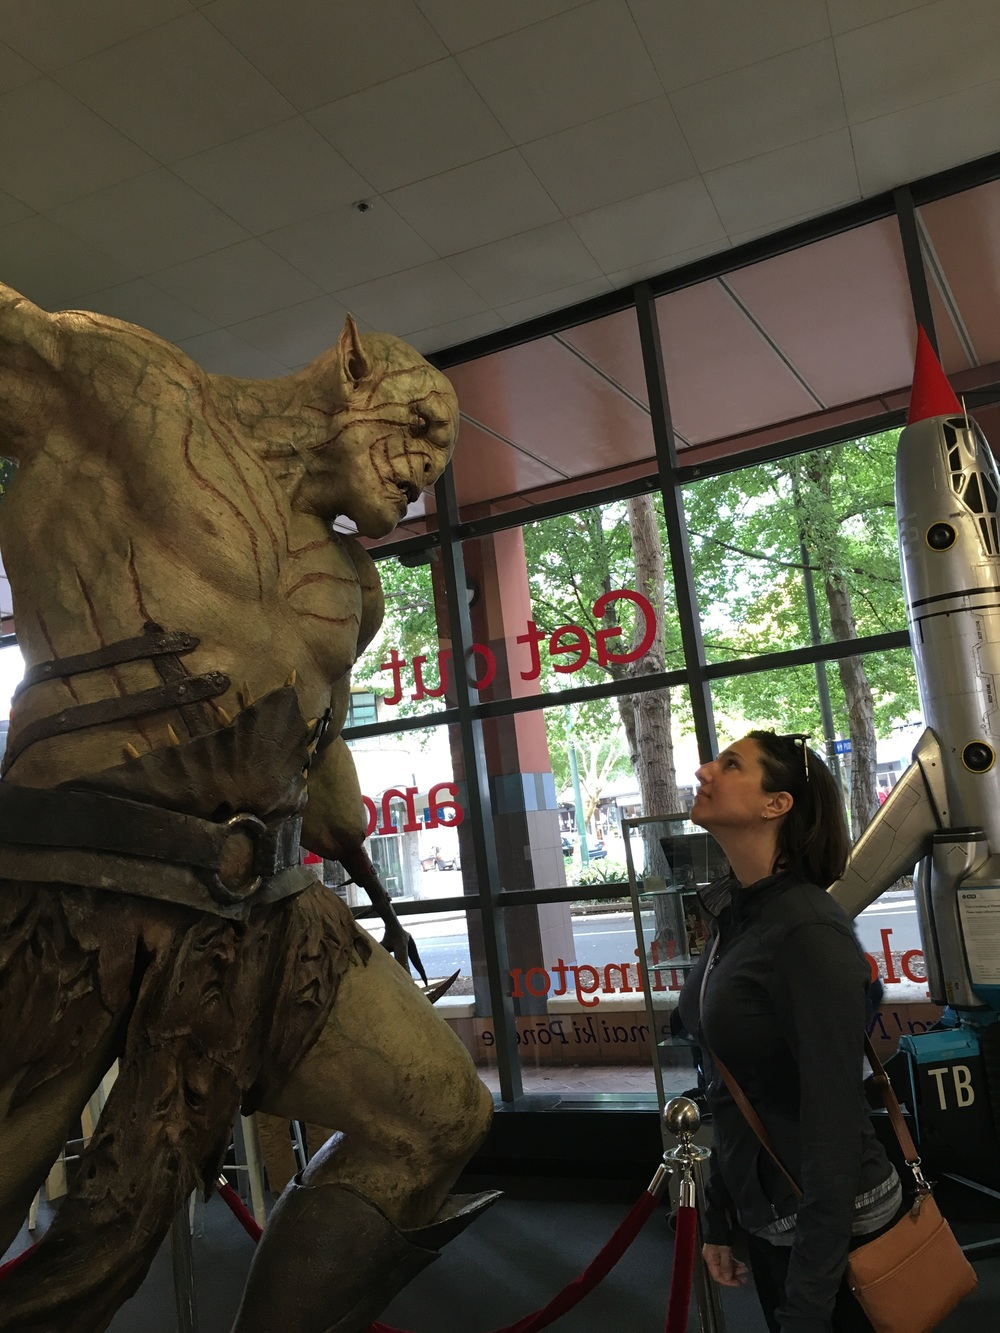 Sus v Orc from The Hobbit™ whose name escapes me. Pic taken at Wellington iSite, NZs tourist info centers